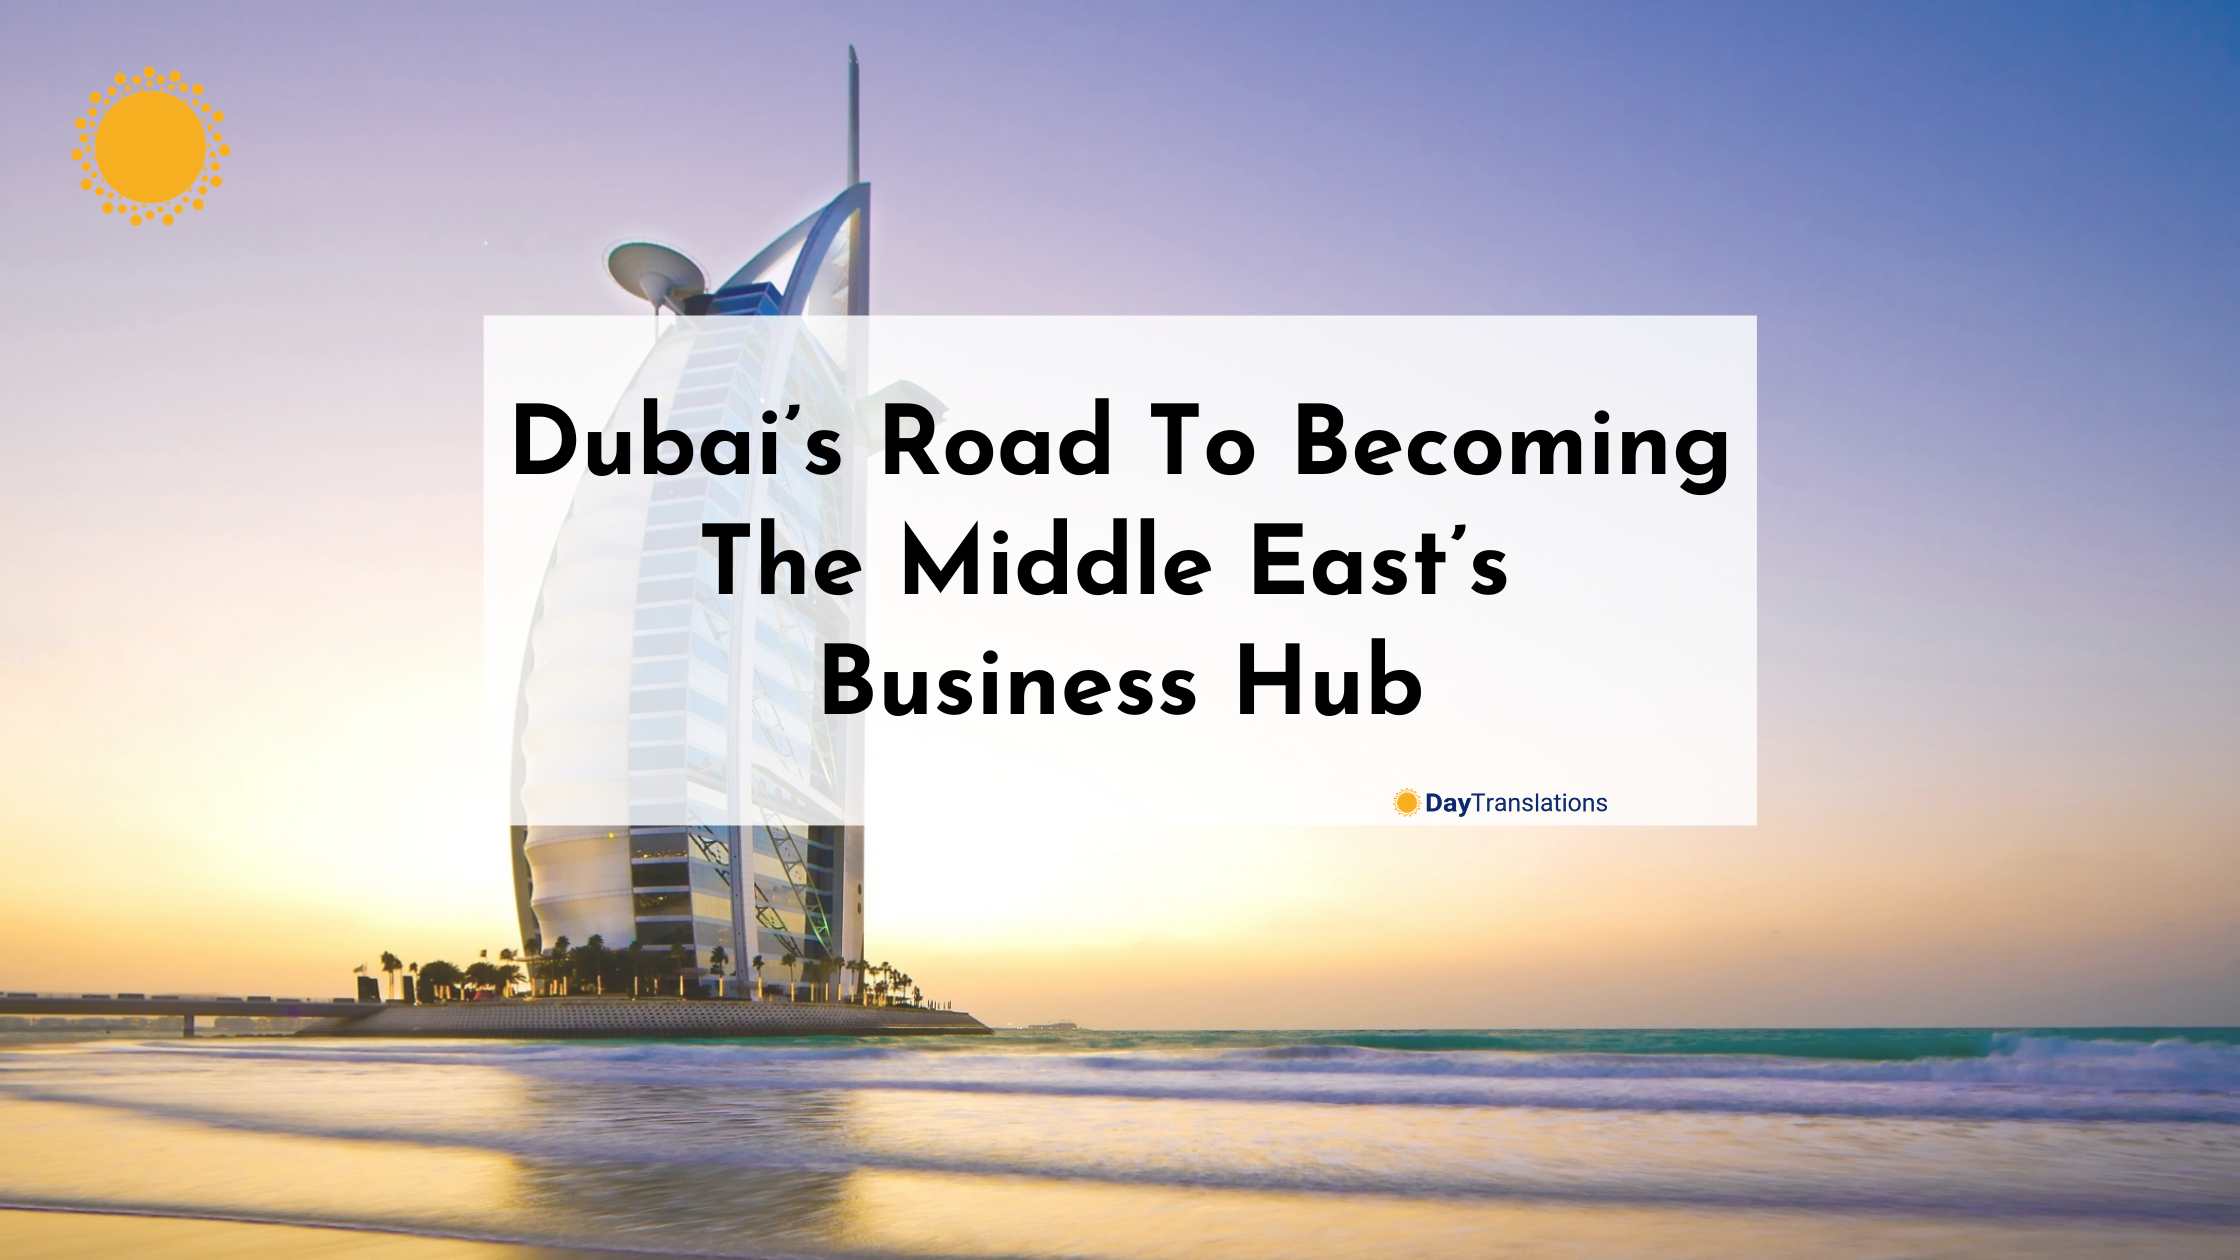 Dubai's Road To Becoming The Middle East's Business Hub